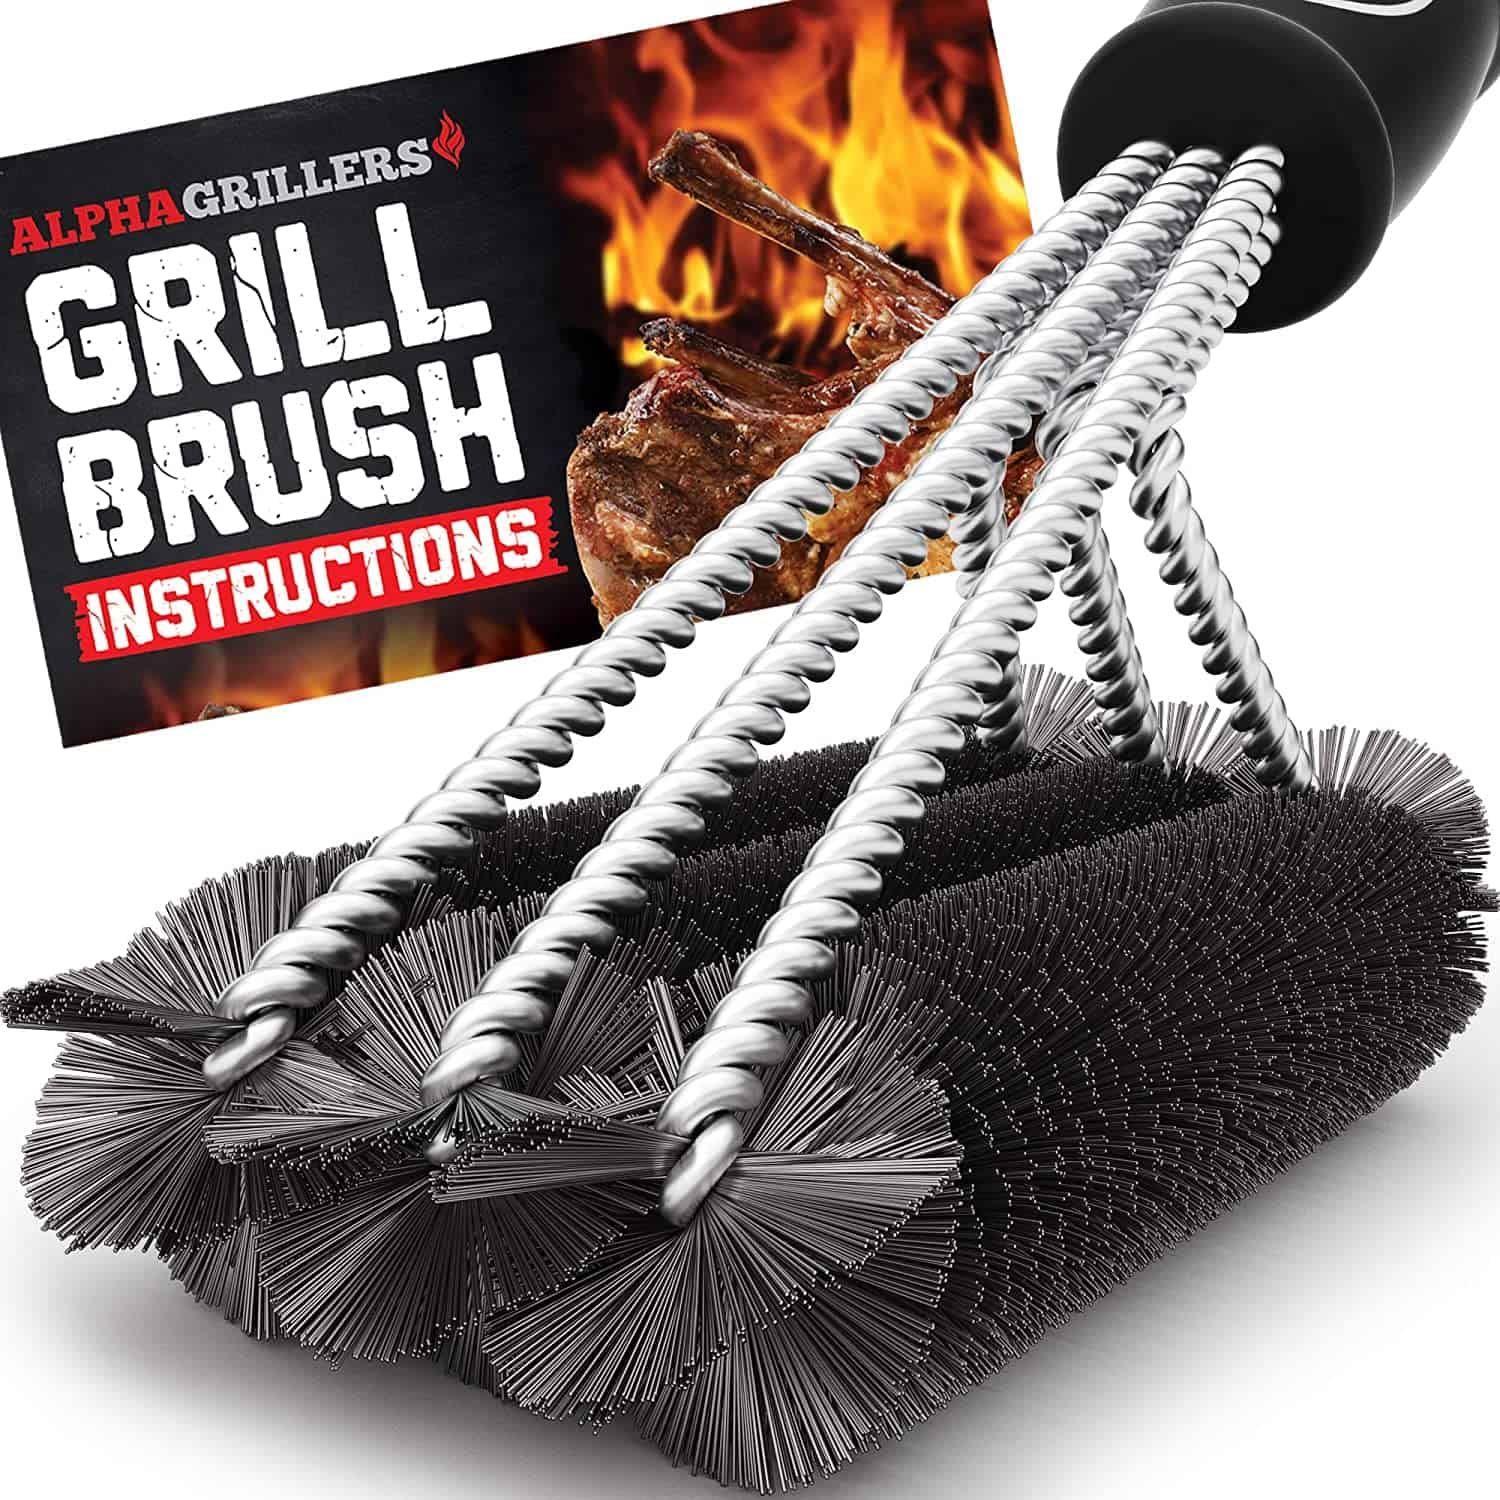 Best budget grill brush- Alpha Grillers Grill Brush